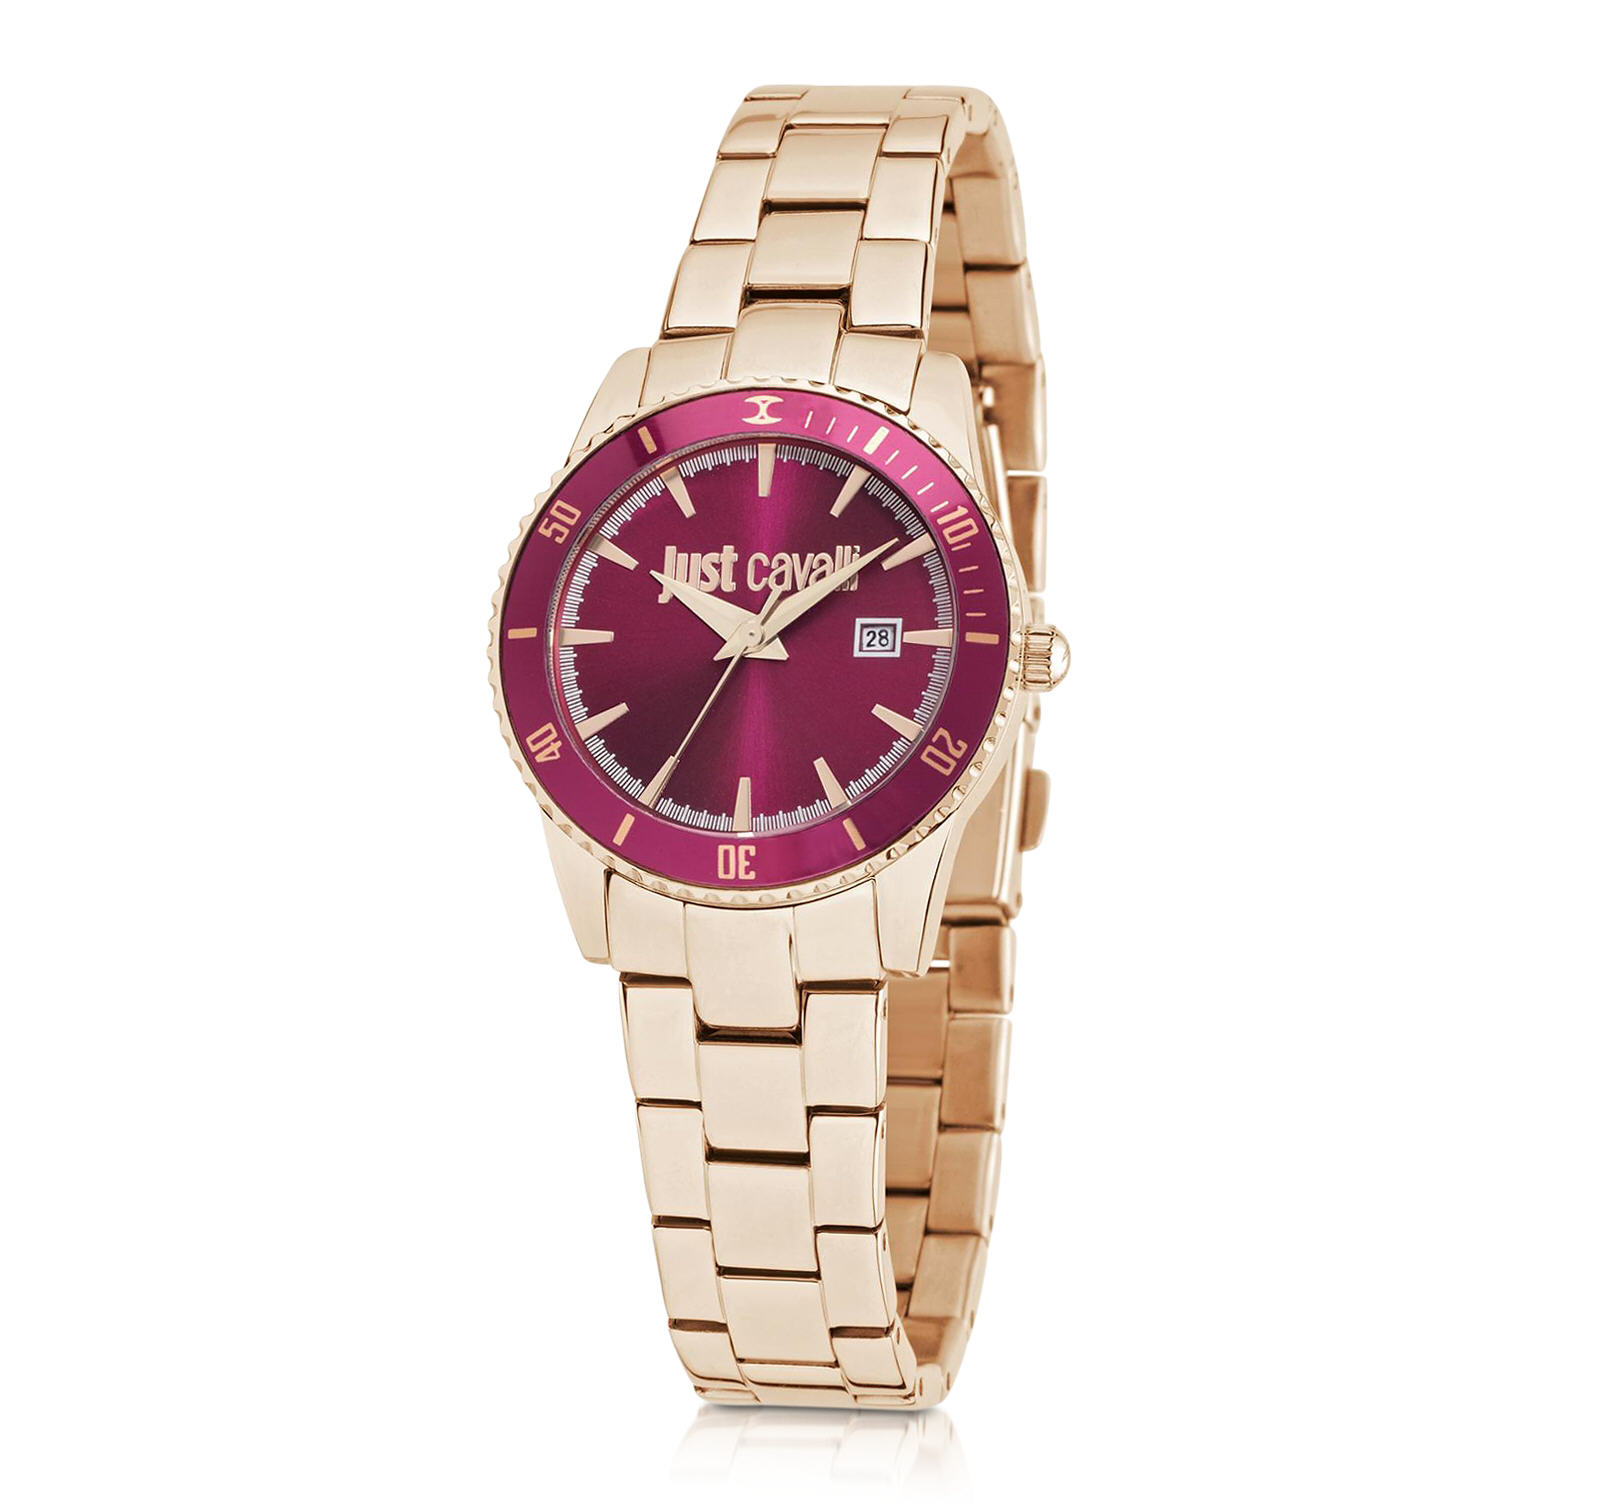 Just In Time Montre femme Just Cavalli - Montres Forzieri